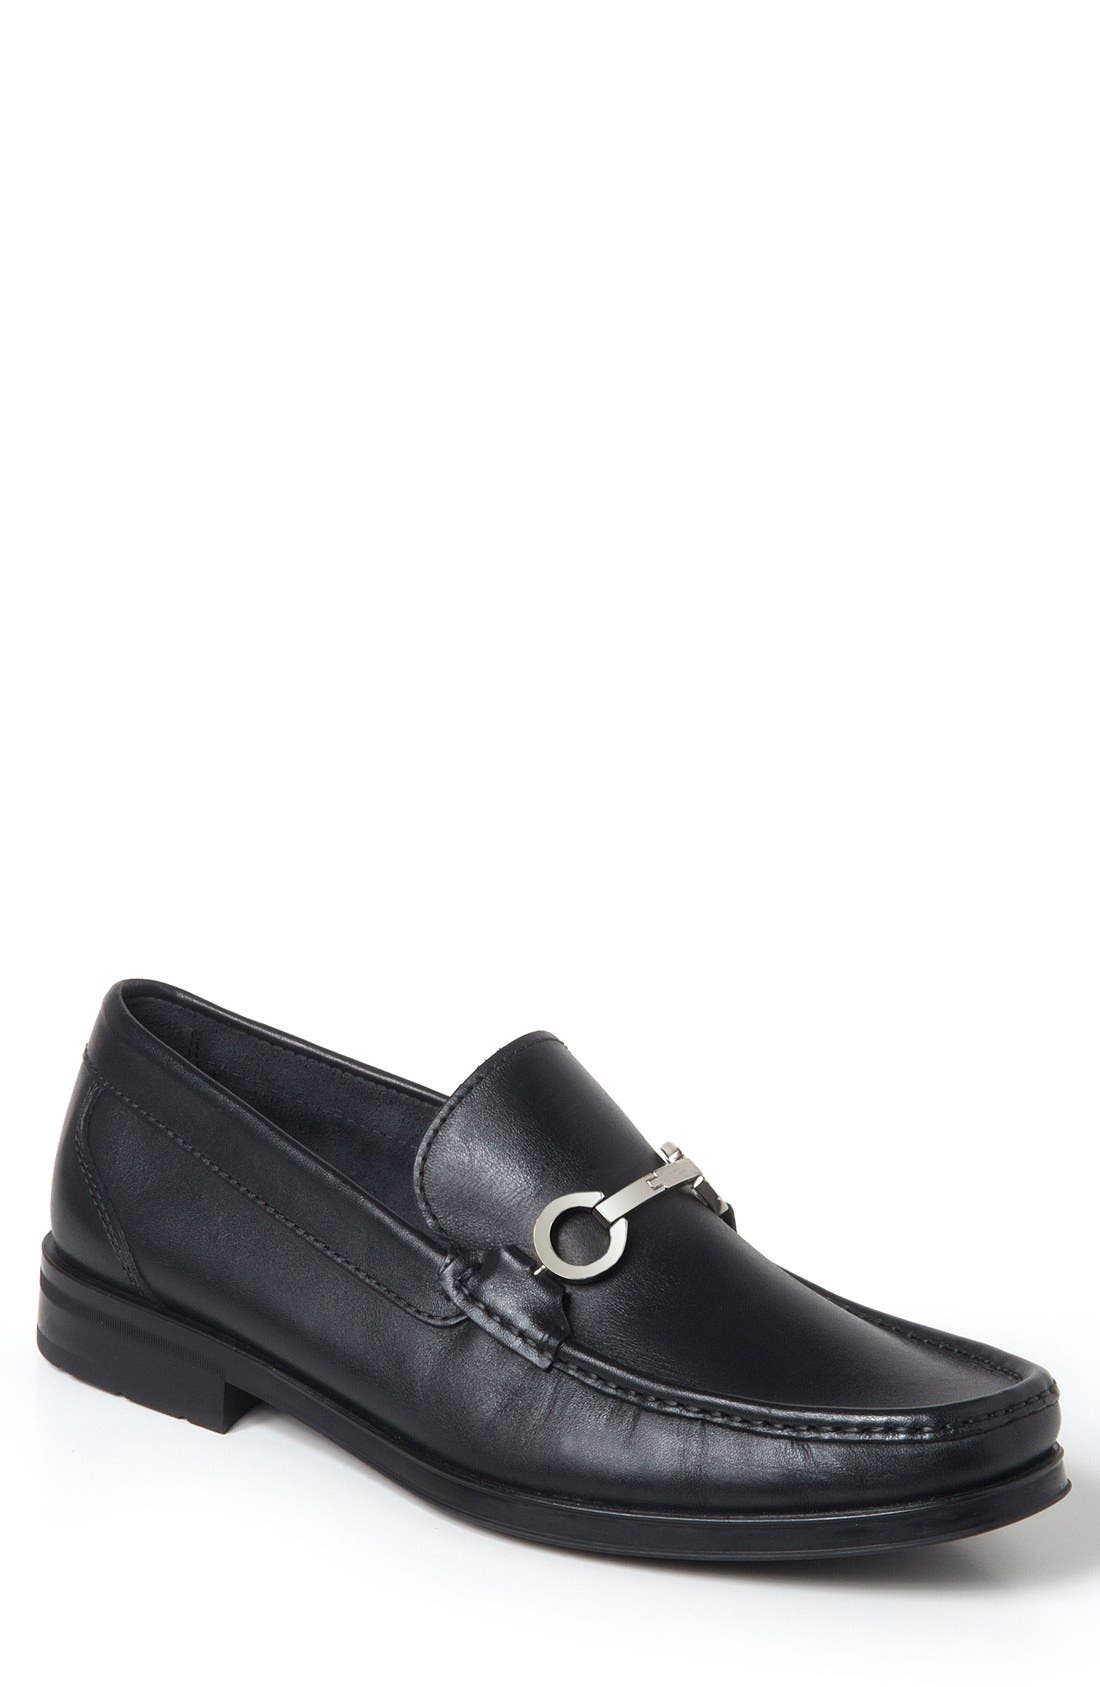 Genoa Bit Loafer,                             Alternate thumbnail 5, color,                             BLACK LEATHER